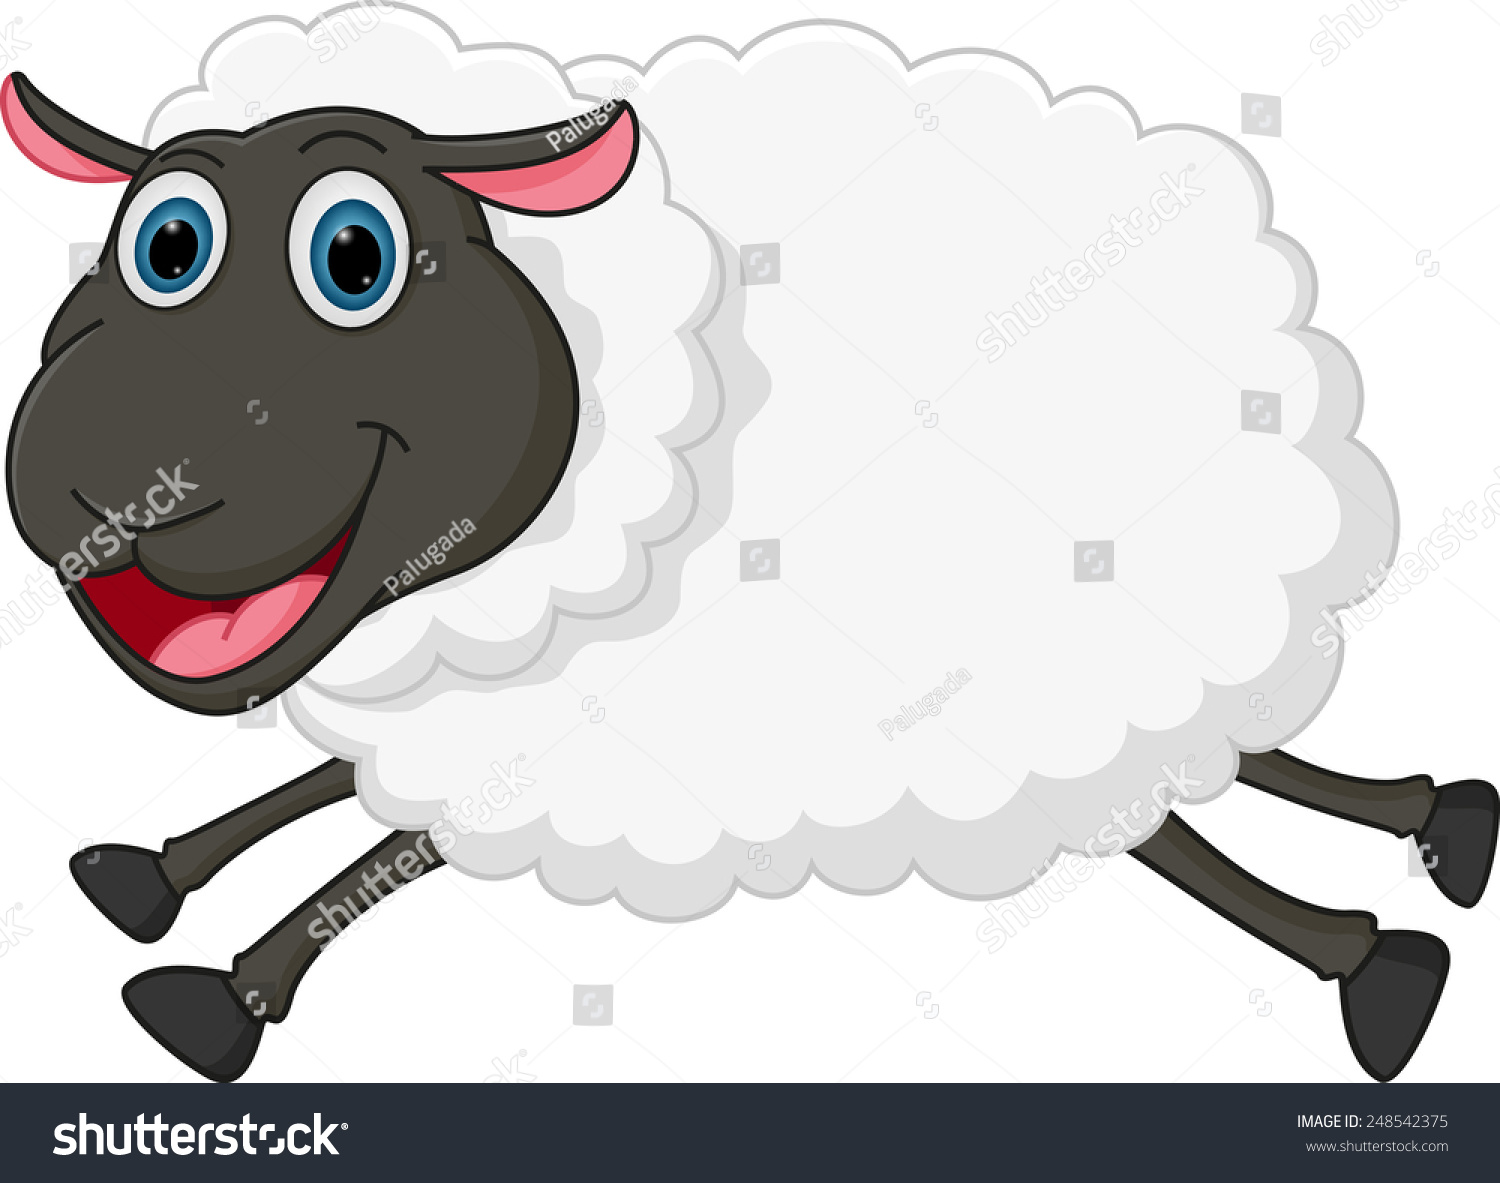 Happy Sheep Jumping Stock Vector 248542375 - Shutterstock for Happy Lamb Jumping  61obs